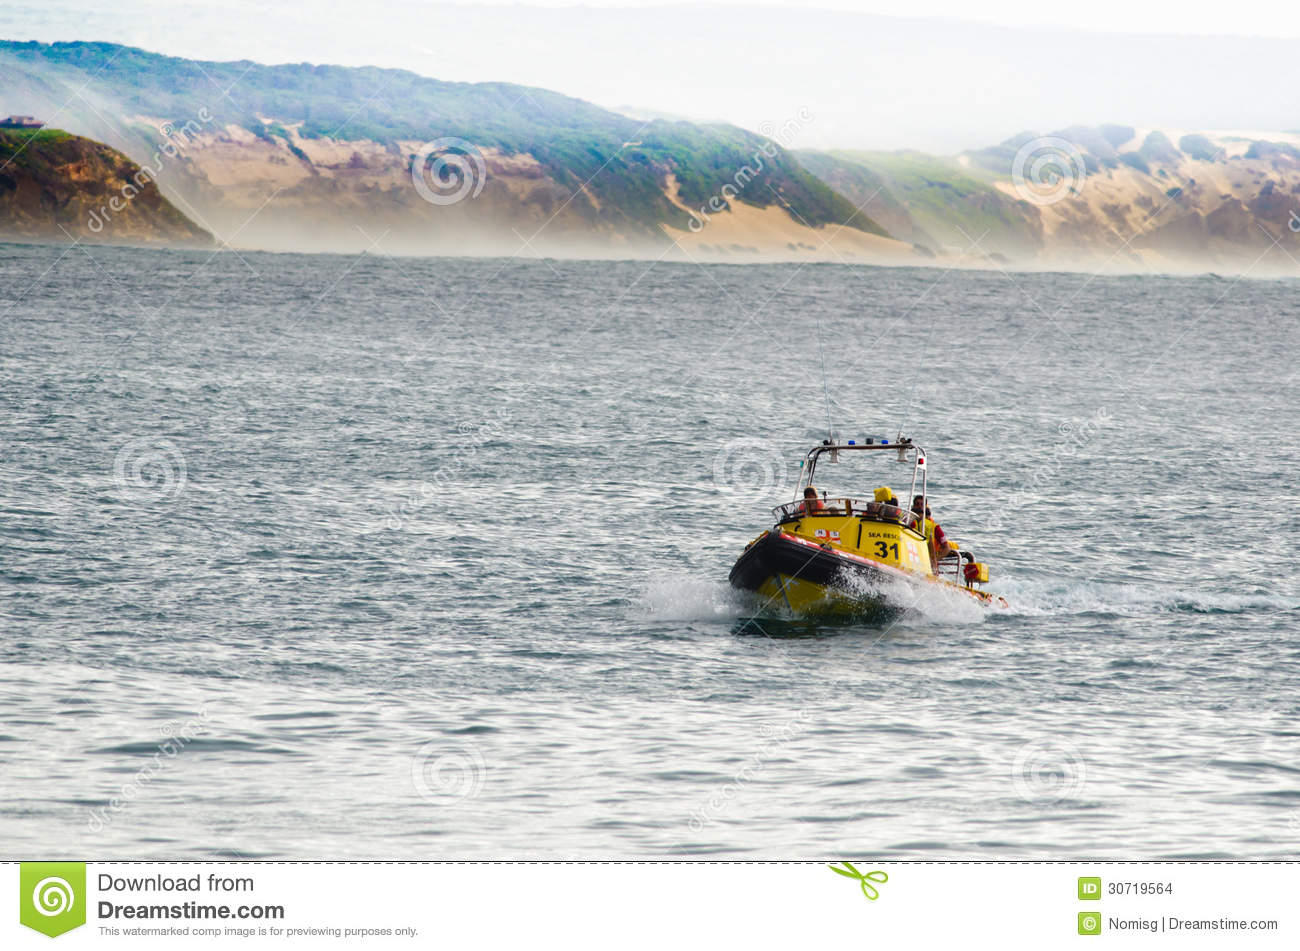 Stilbaai South Africa  city photos gallery : STILBAAI,SOUTH AFRICA DEC. 30: A Sea Rescue boat seen during the ...